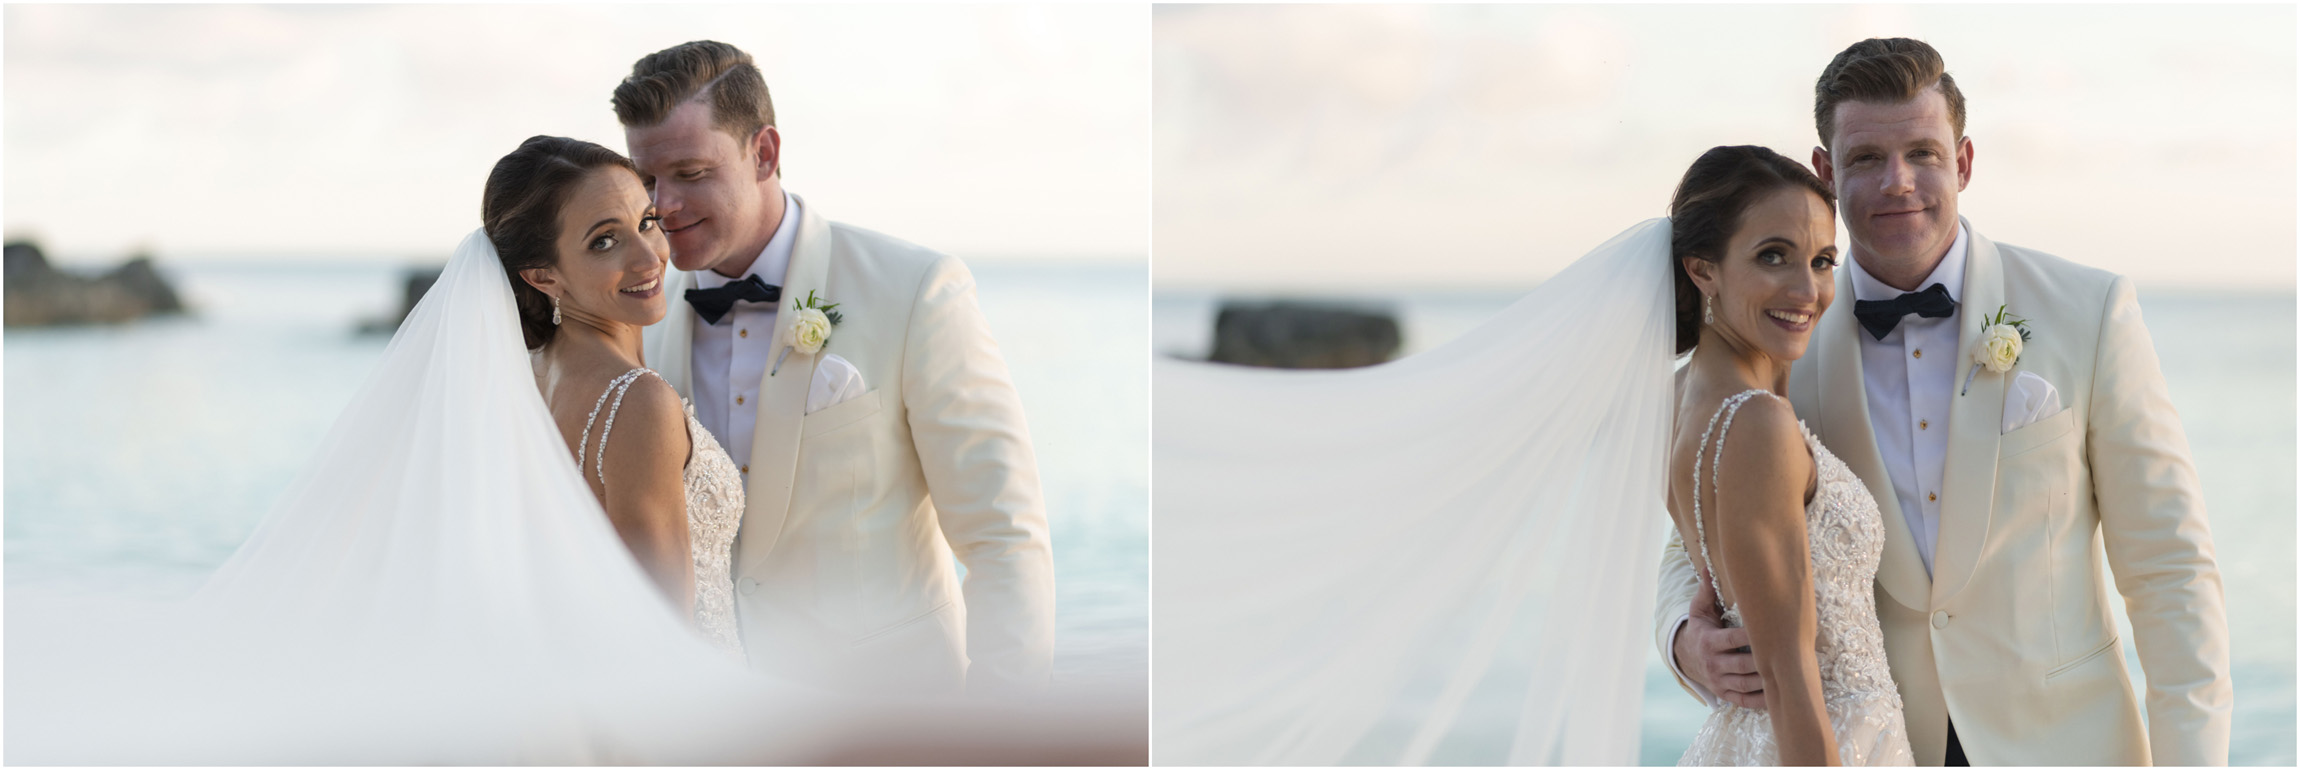 ©Fiander Foto_Bermuda Wedding Photographer_The Reefs_Taylor_Tedd_136.jpg